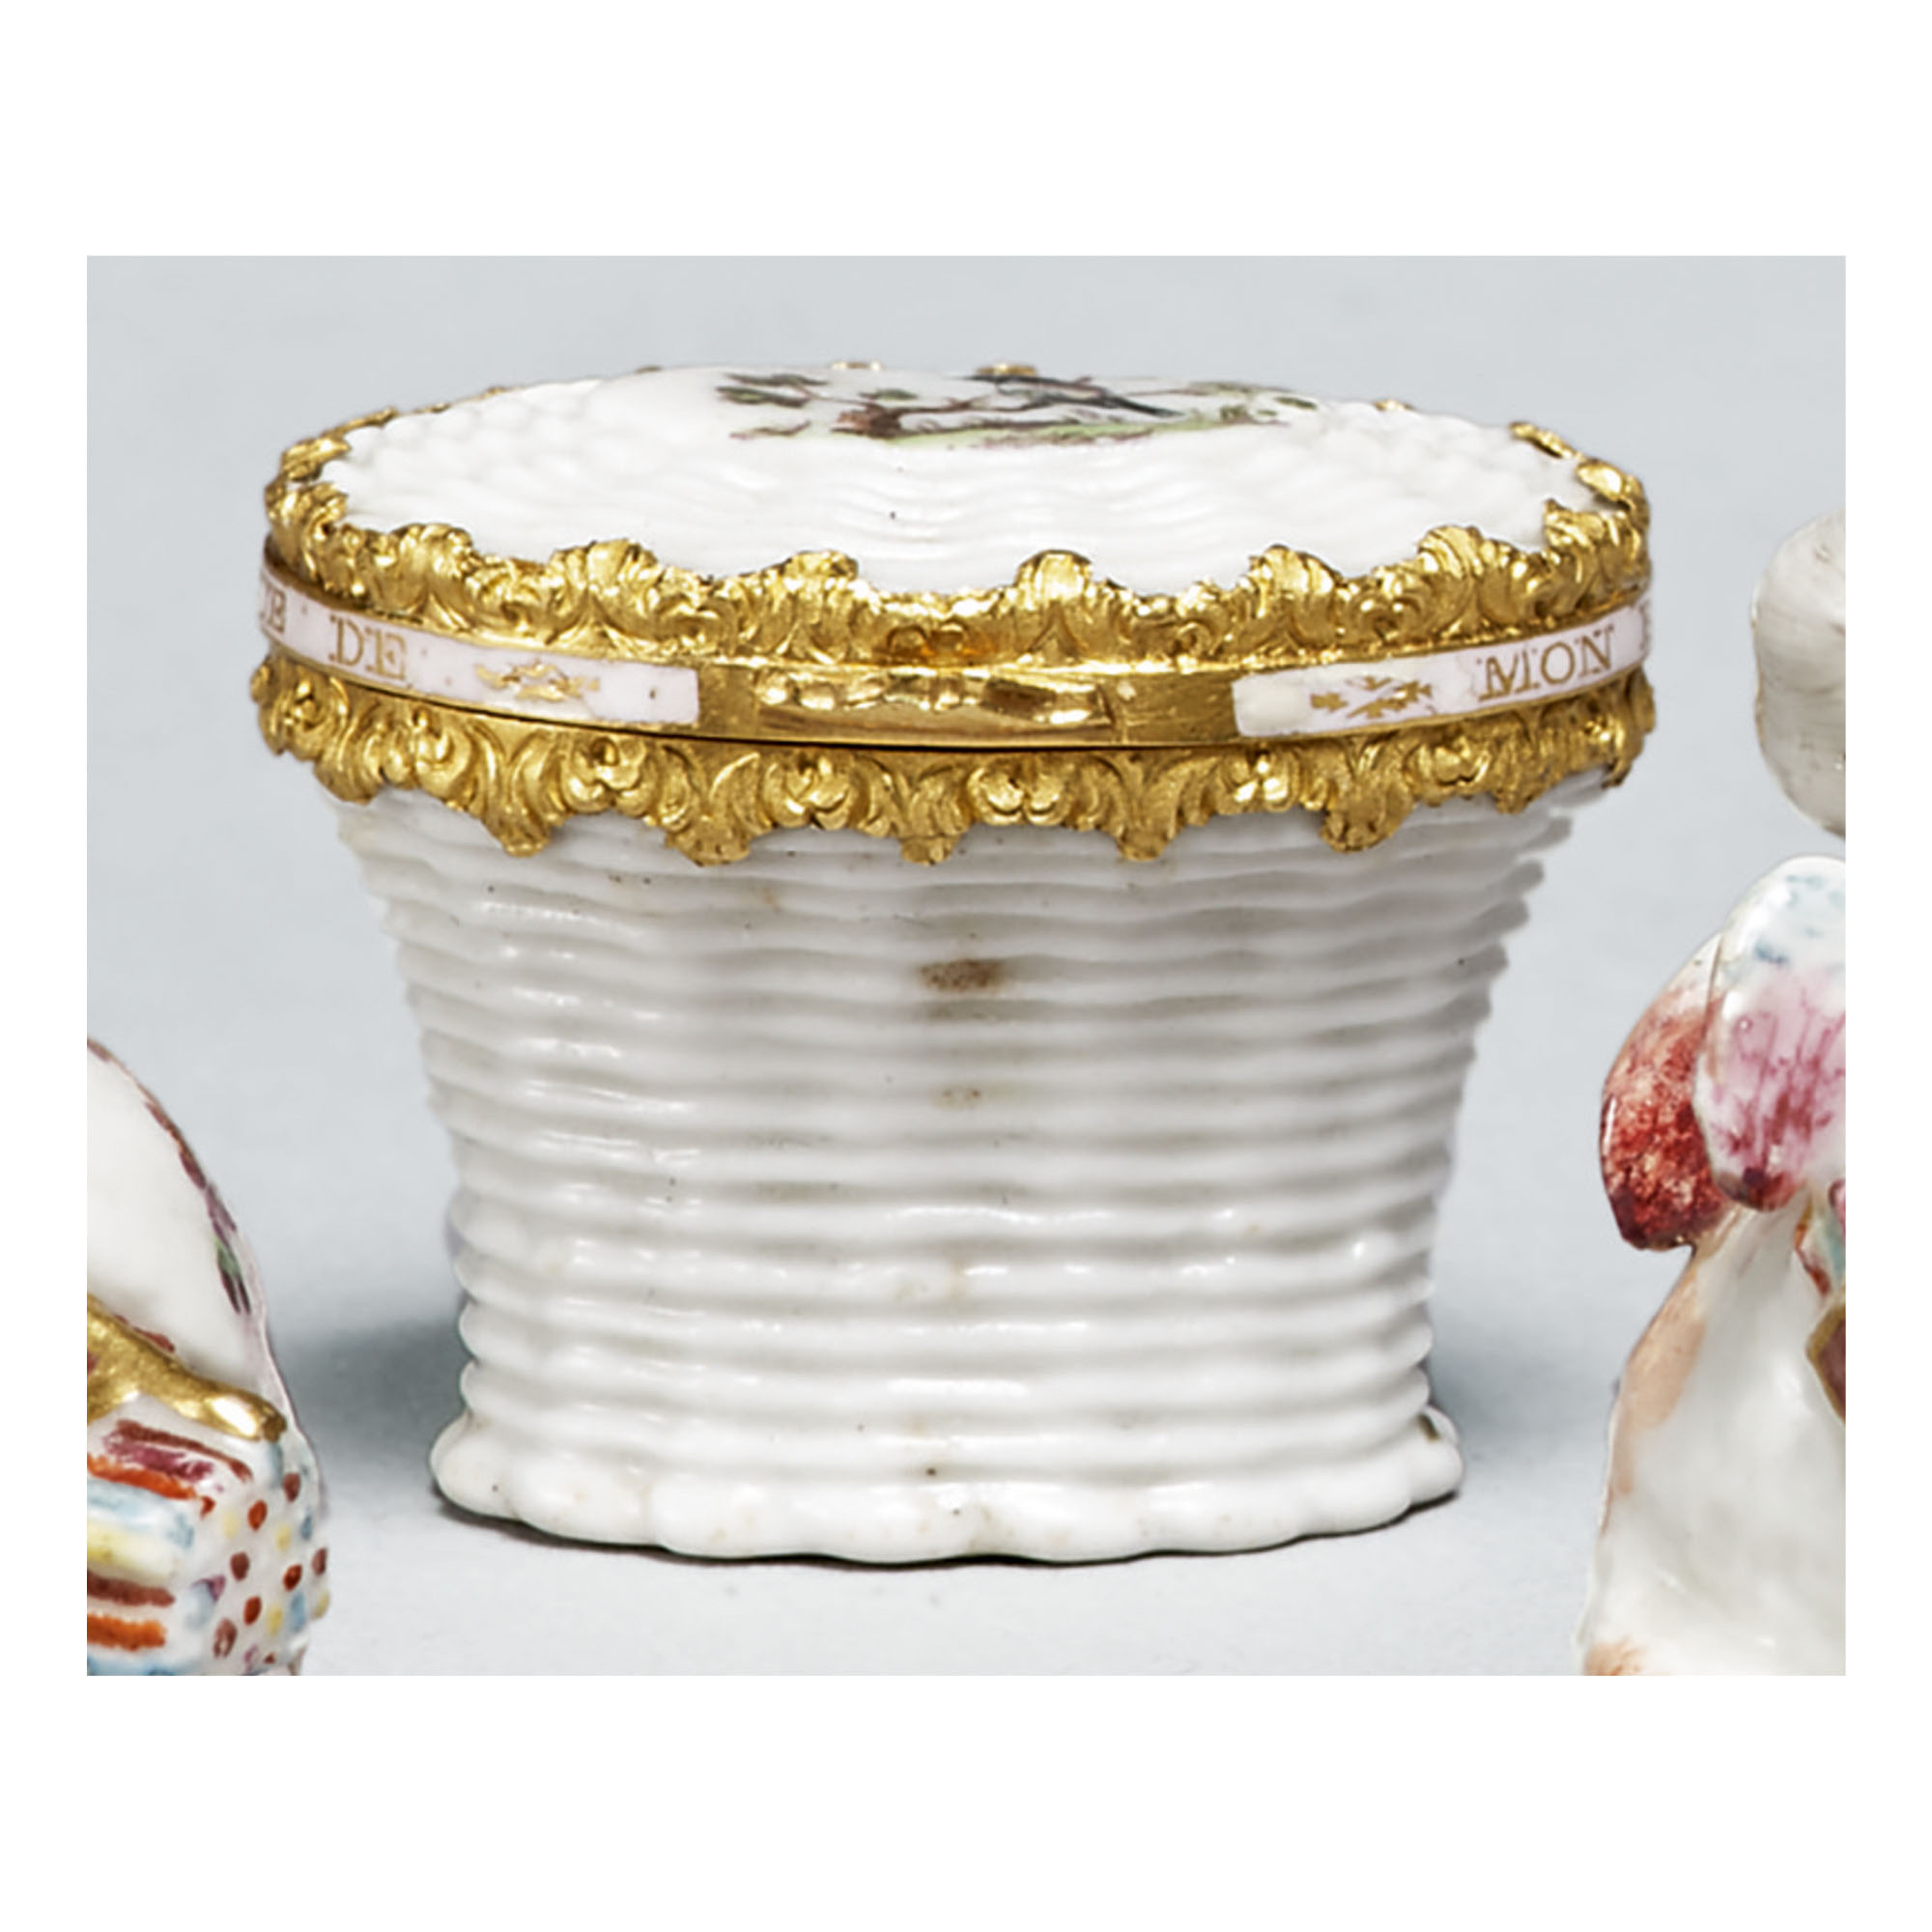 A ST. JAMES'S (CHARLES GOUYN) OR CHELSEA PORCELAIN GOLD-MOUNTED BONBONNIERE AND COVER CIRCA 1750-60